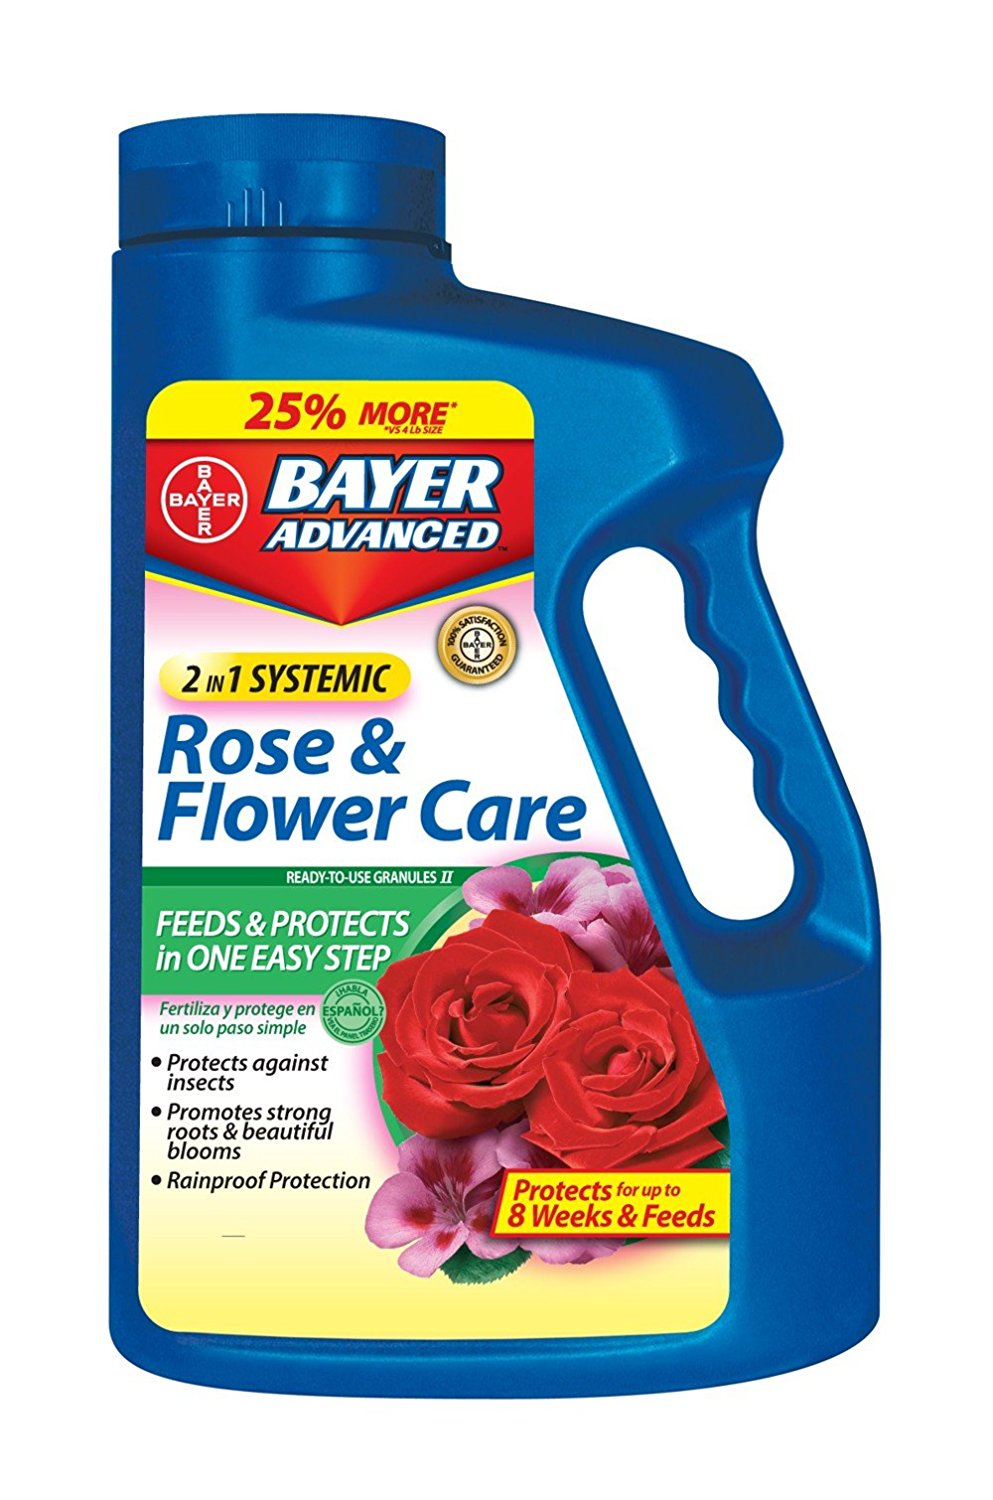 Crop 502610A 5LB 12 18 6 FLWR Care Rose And Flower By Bayer